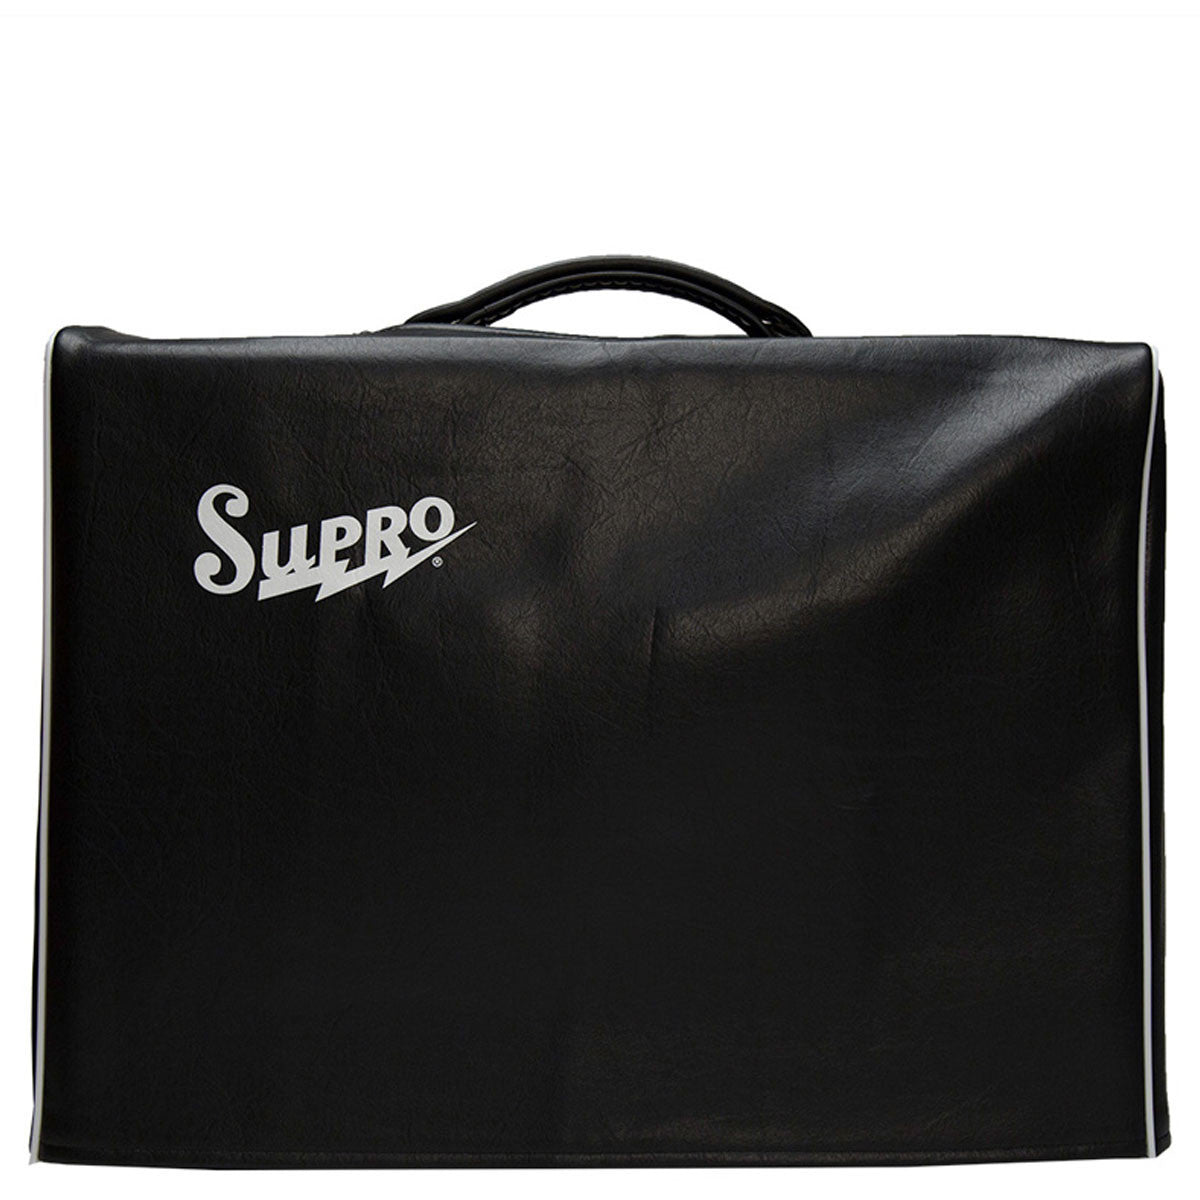 Supro - VC10 - Black Amp Cover - Fits 1x10 Combo | Lucky Fret Music Co.